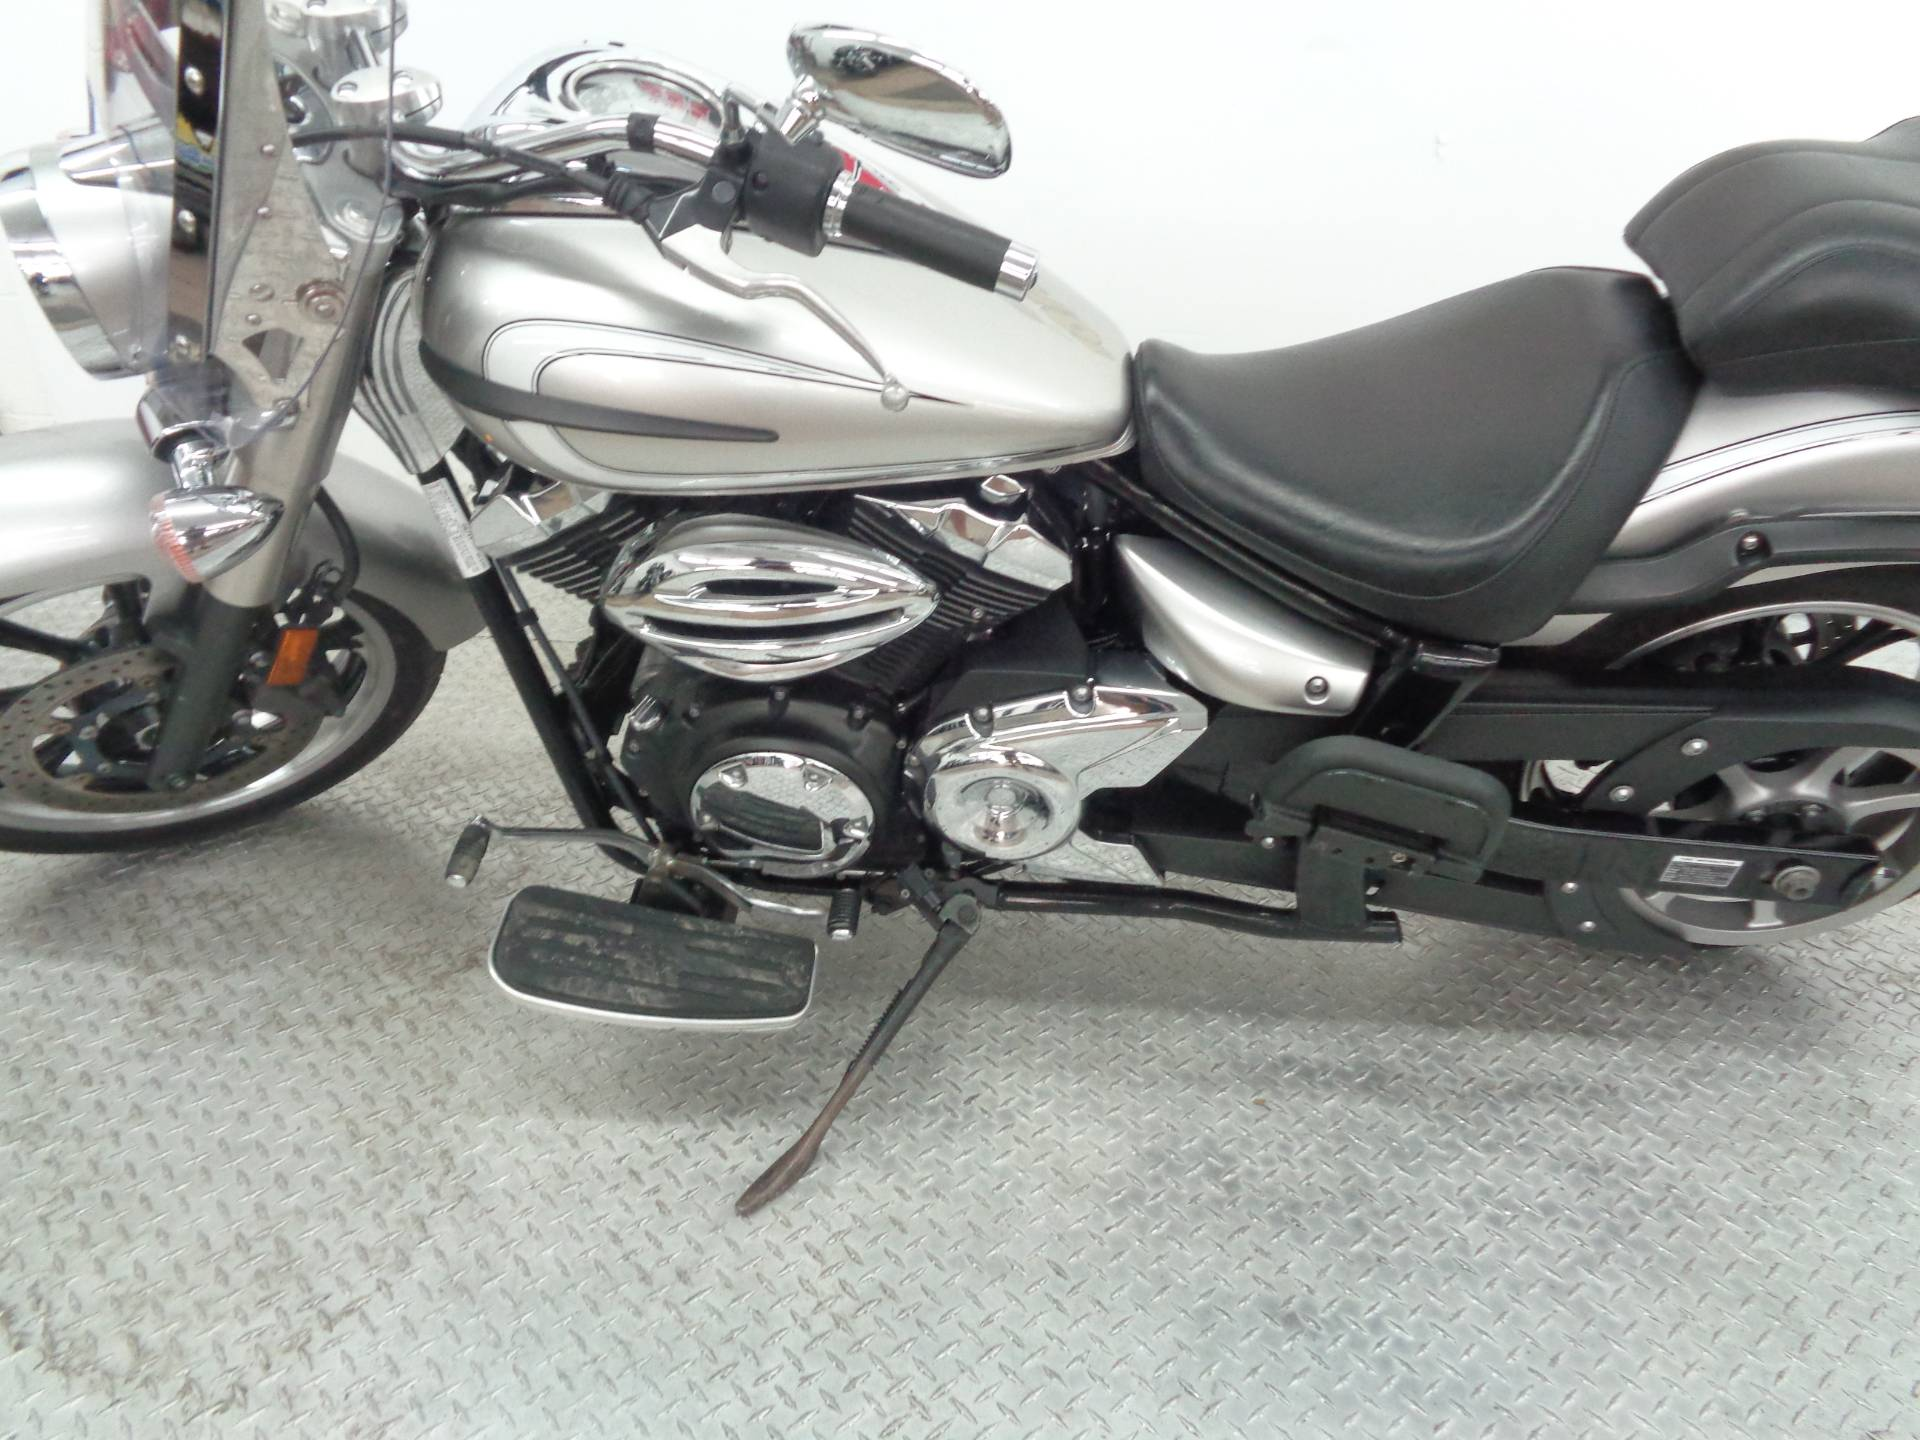 2012 Yamaha V Star 950 in Tulsa, Oklahoma - Photo 5